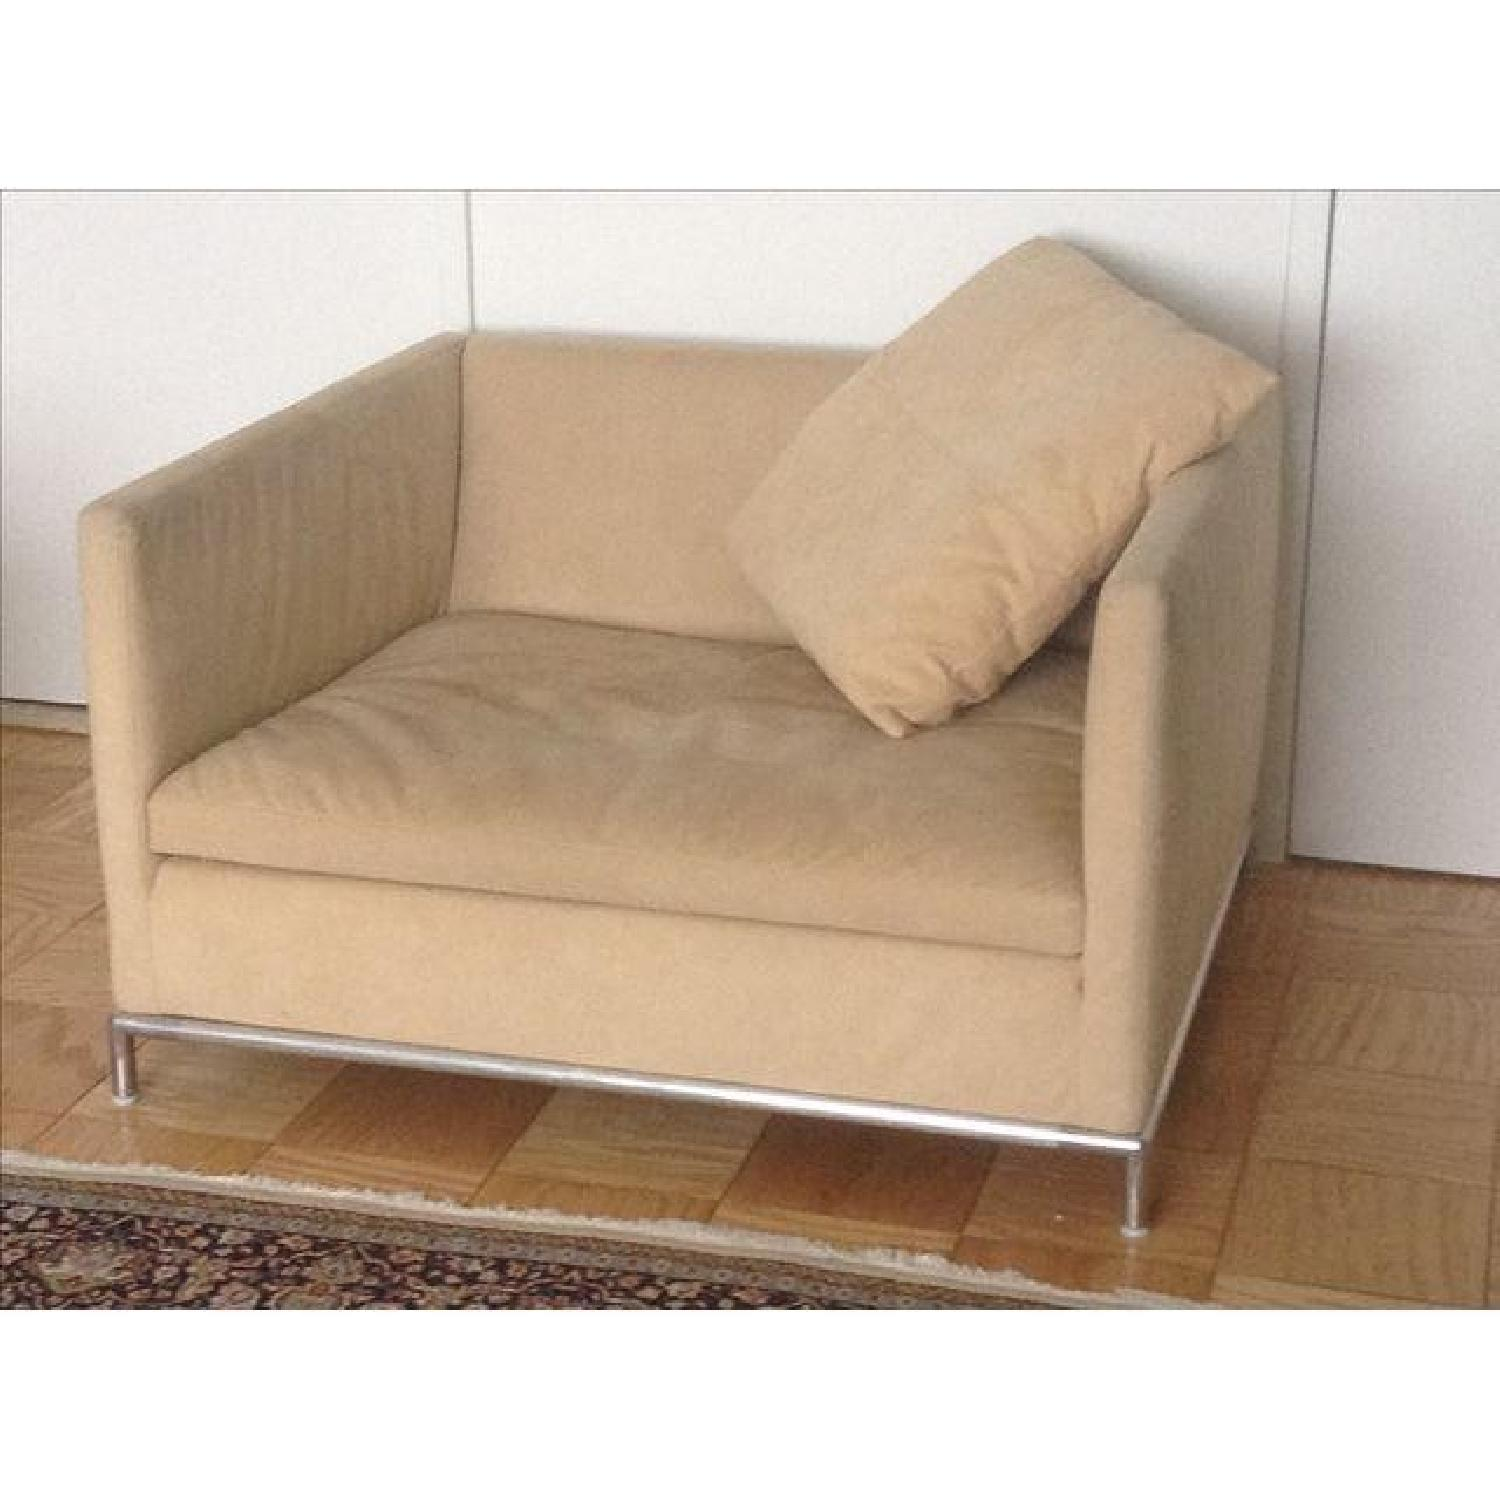 B&B Italia Ultrasuede Chair - image-1